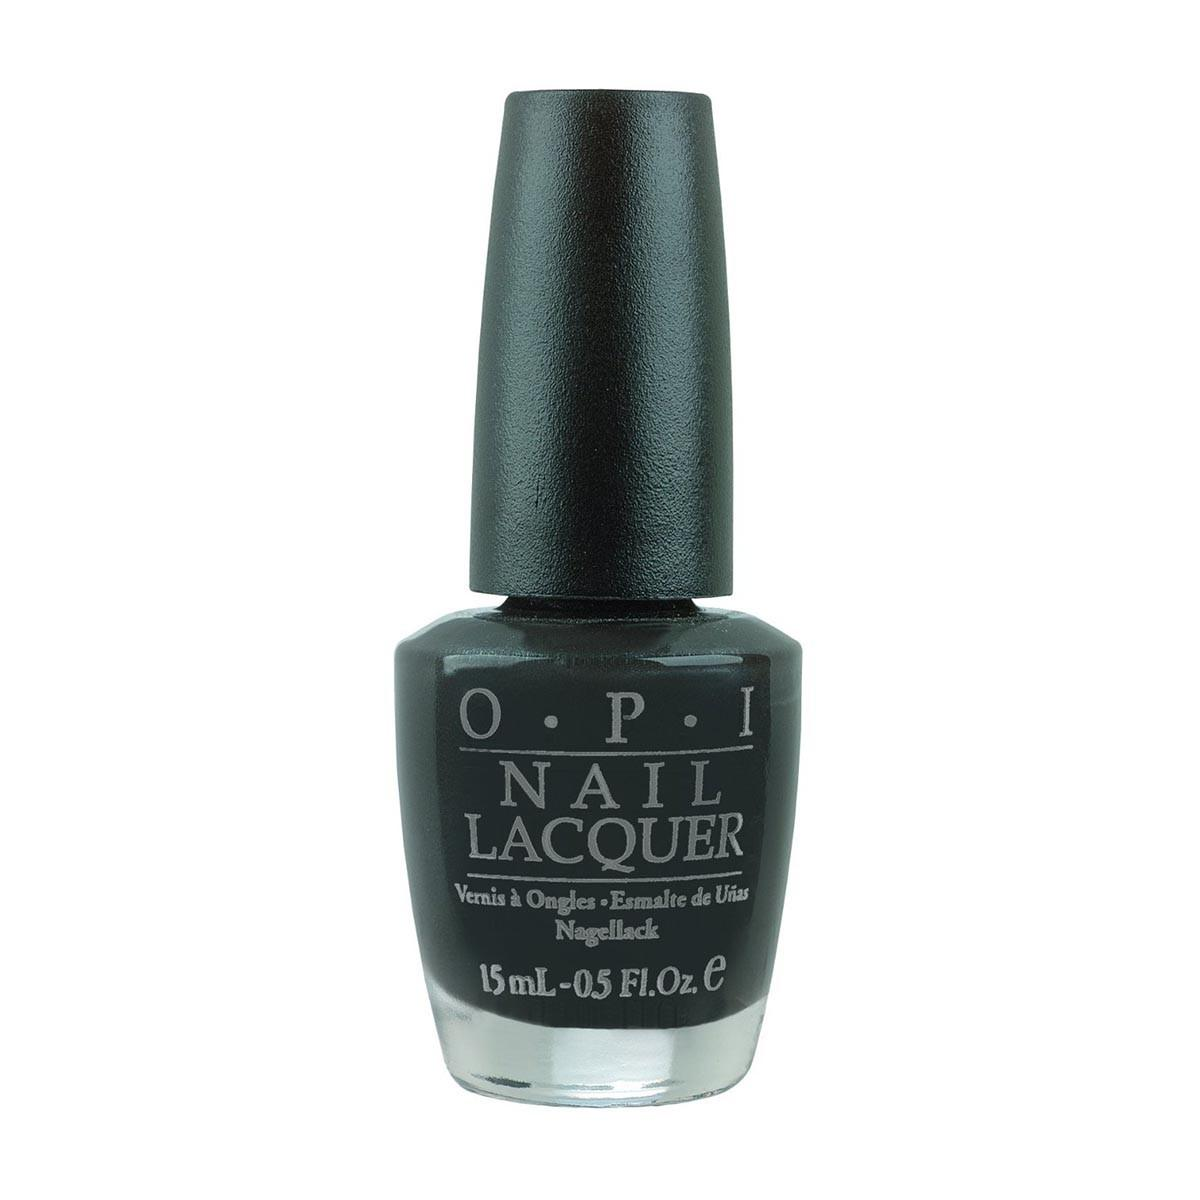 Opi fragrances Nail Lacquer Nlt02 Eulady In Black